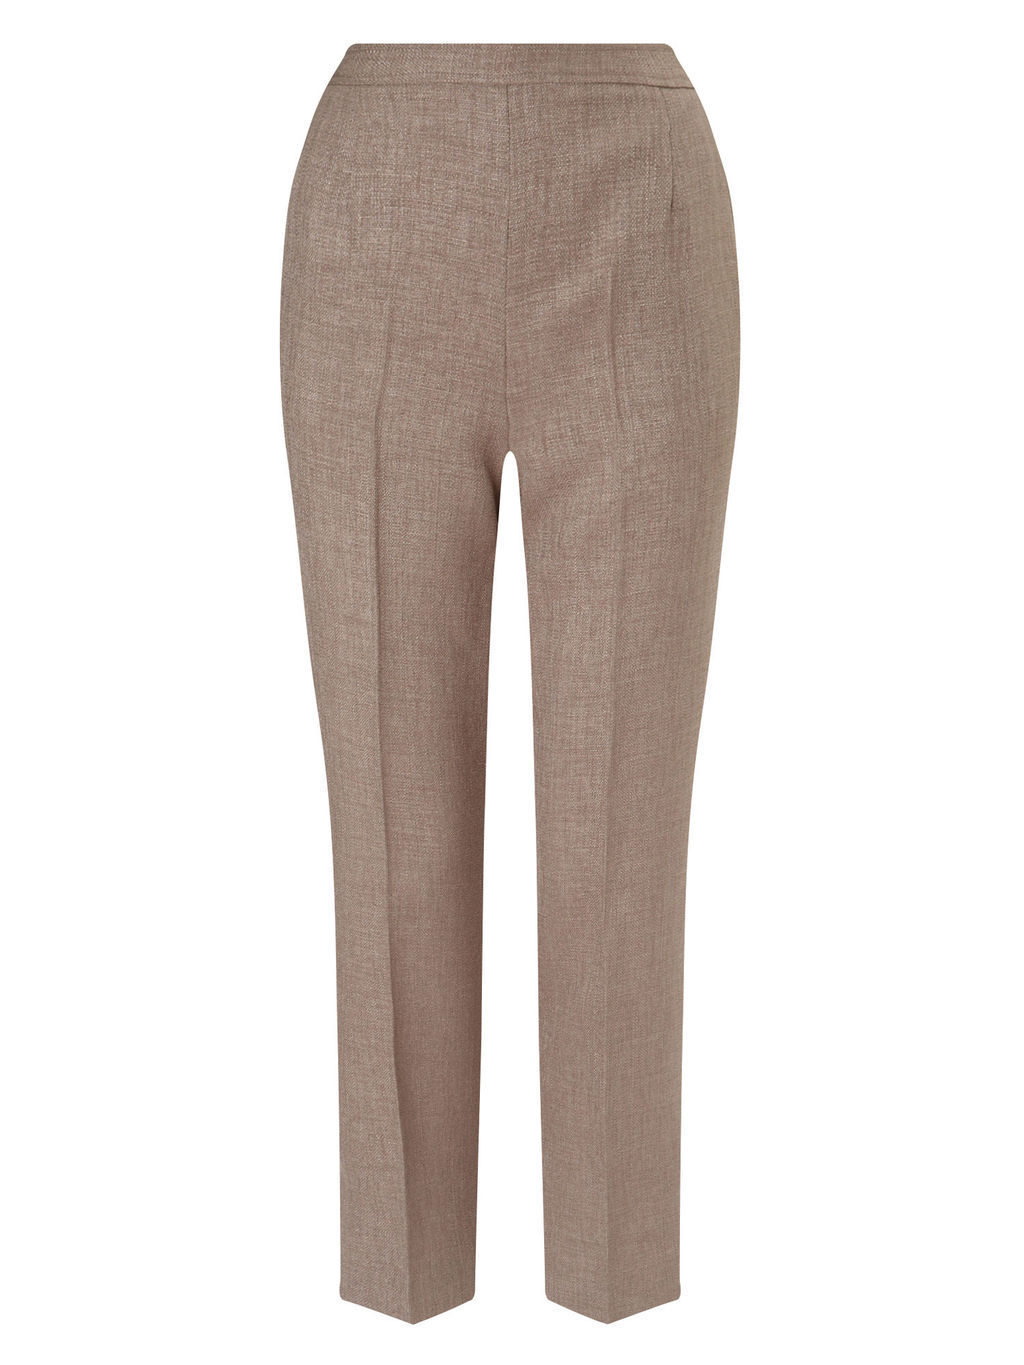 Basketweave Trouser Short - waist: high rise; predominant colour: taupe; occasions: casual, creative work; length: ankle length; fibres: cotton - mix; waist detail: narrow waistband; fit: slim leg; pattern type: fabric; texture group: woven light midweight; style: standard; pattern: marl; pattern size: light/subtle (bottom); season: s/s 2016; wardrobe: basic